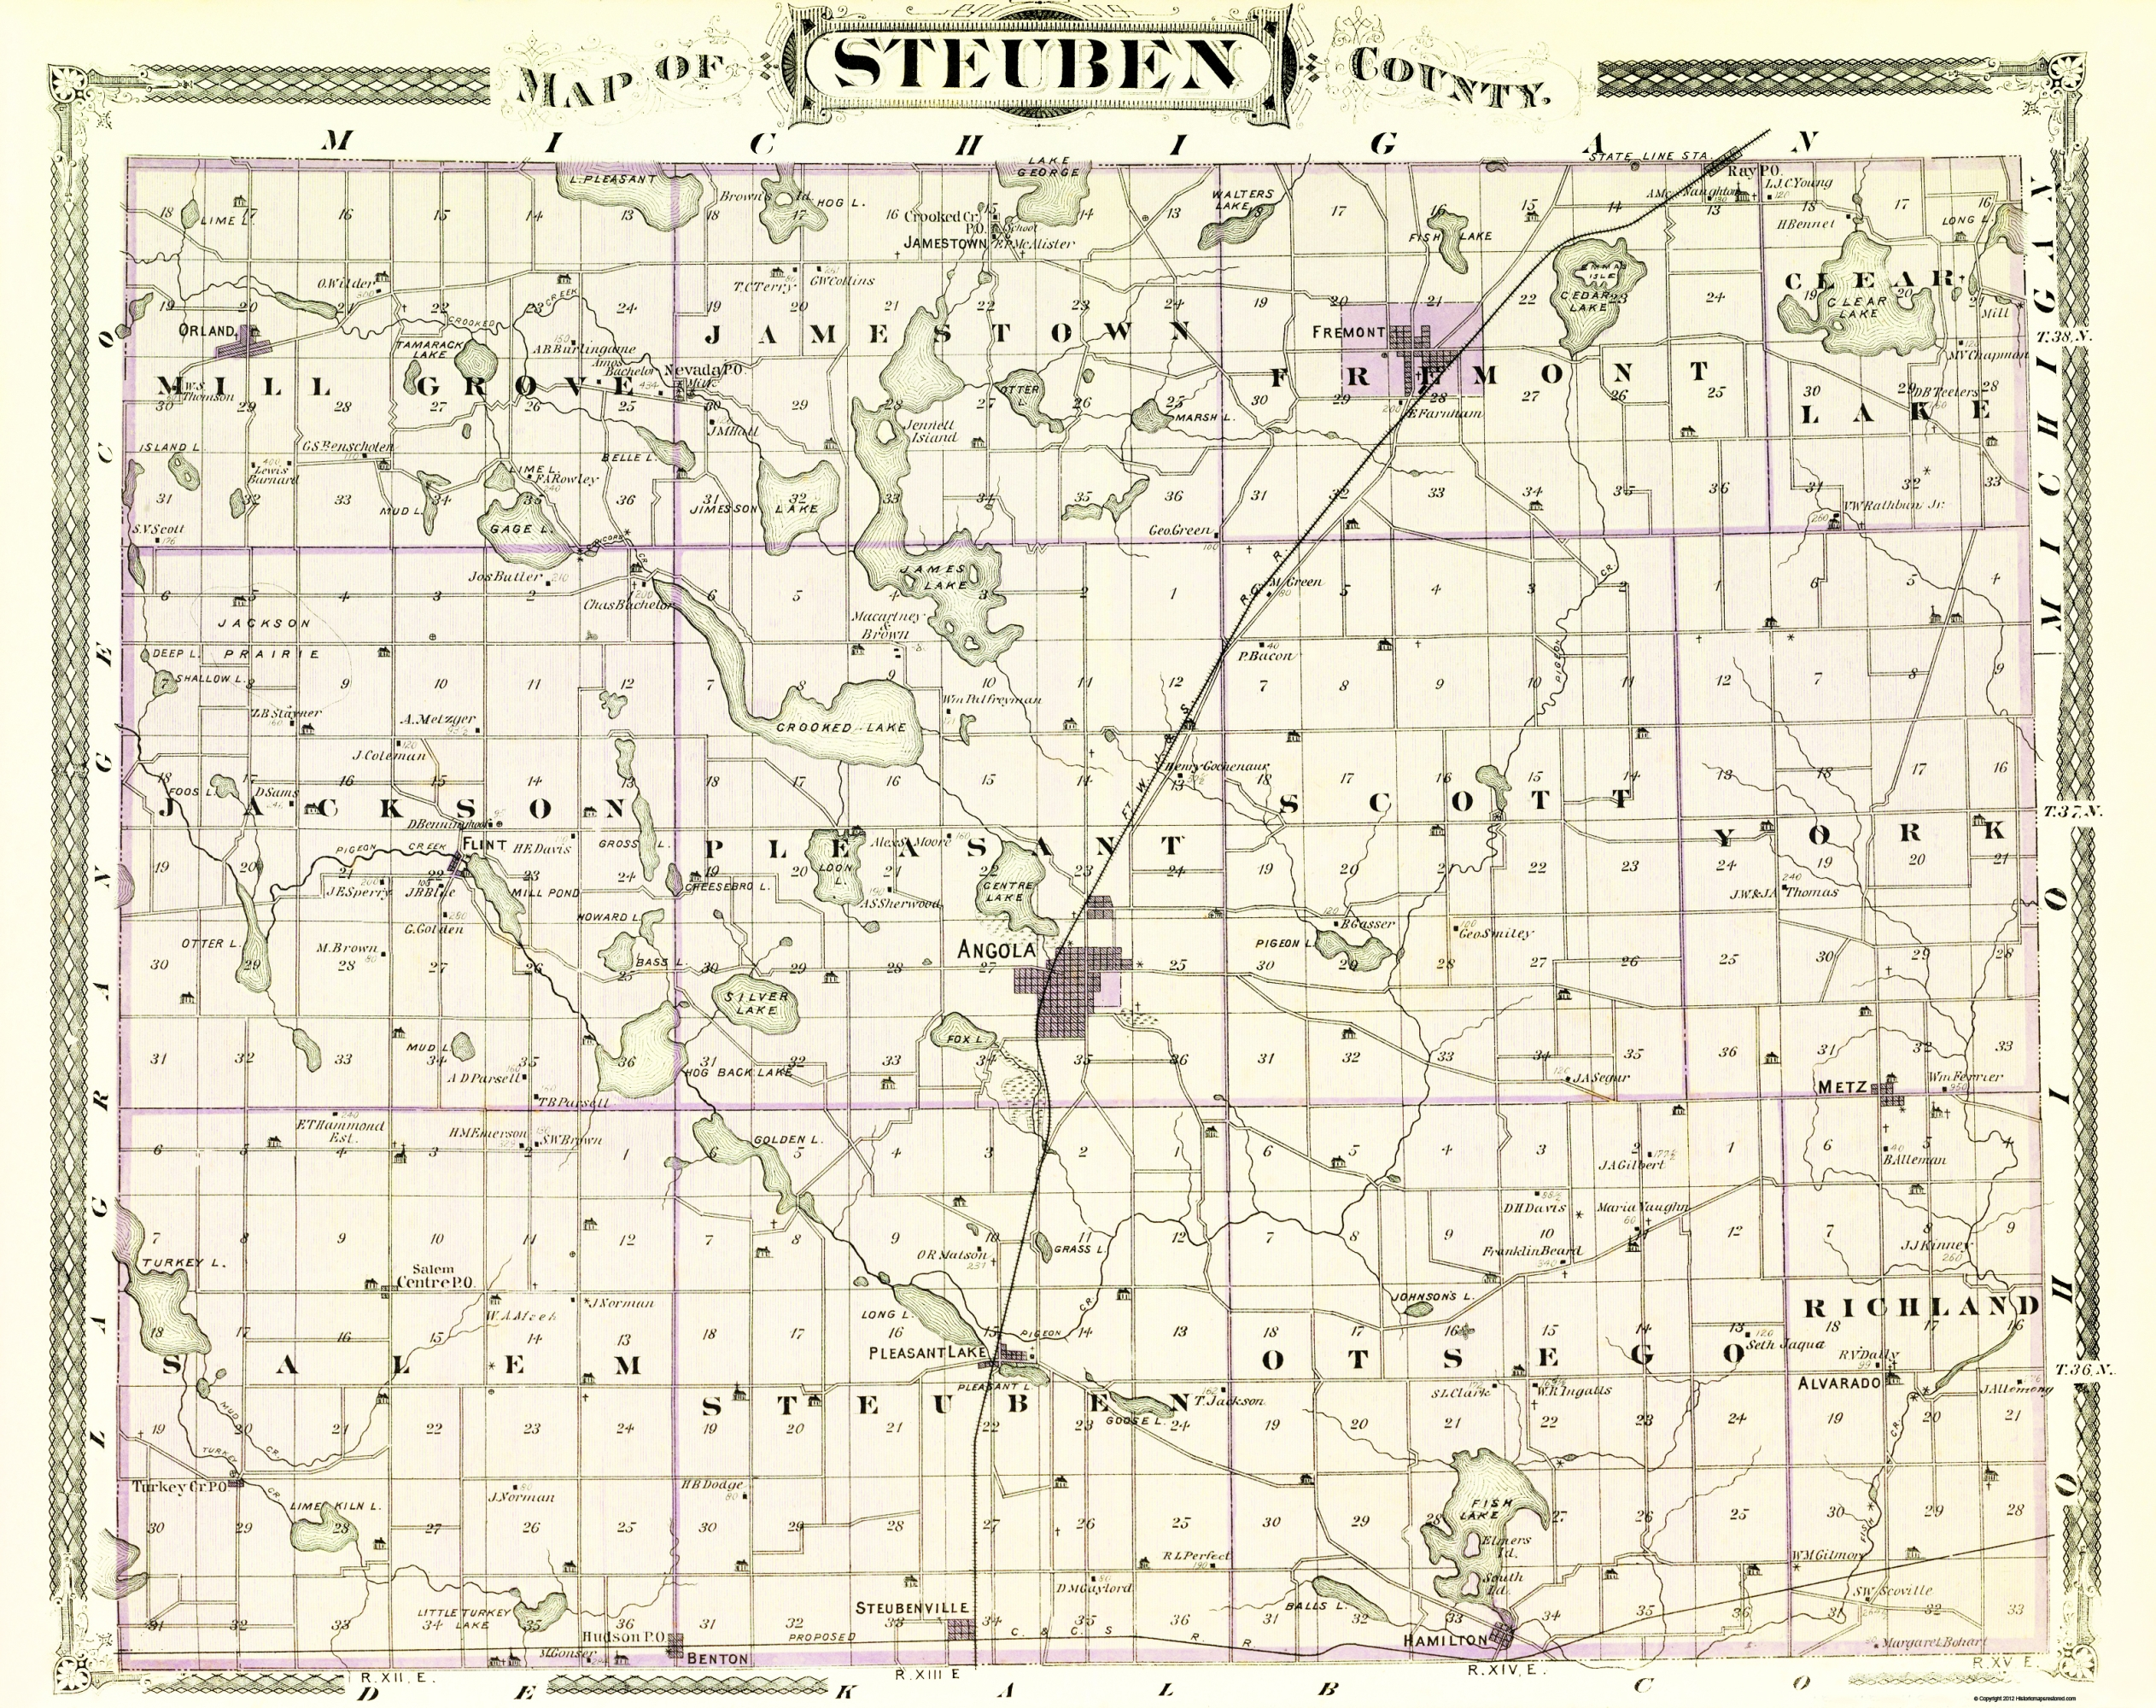 Steuben County Indiana Map.Old County Map Steuben Indiana Baskin 1876